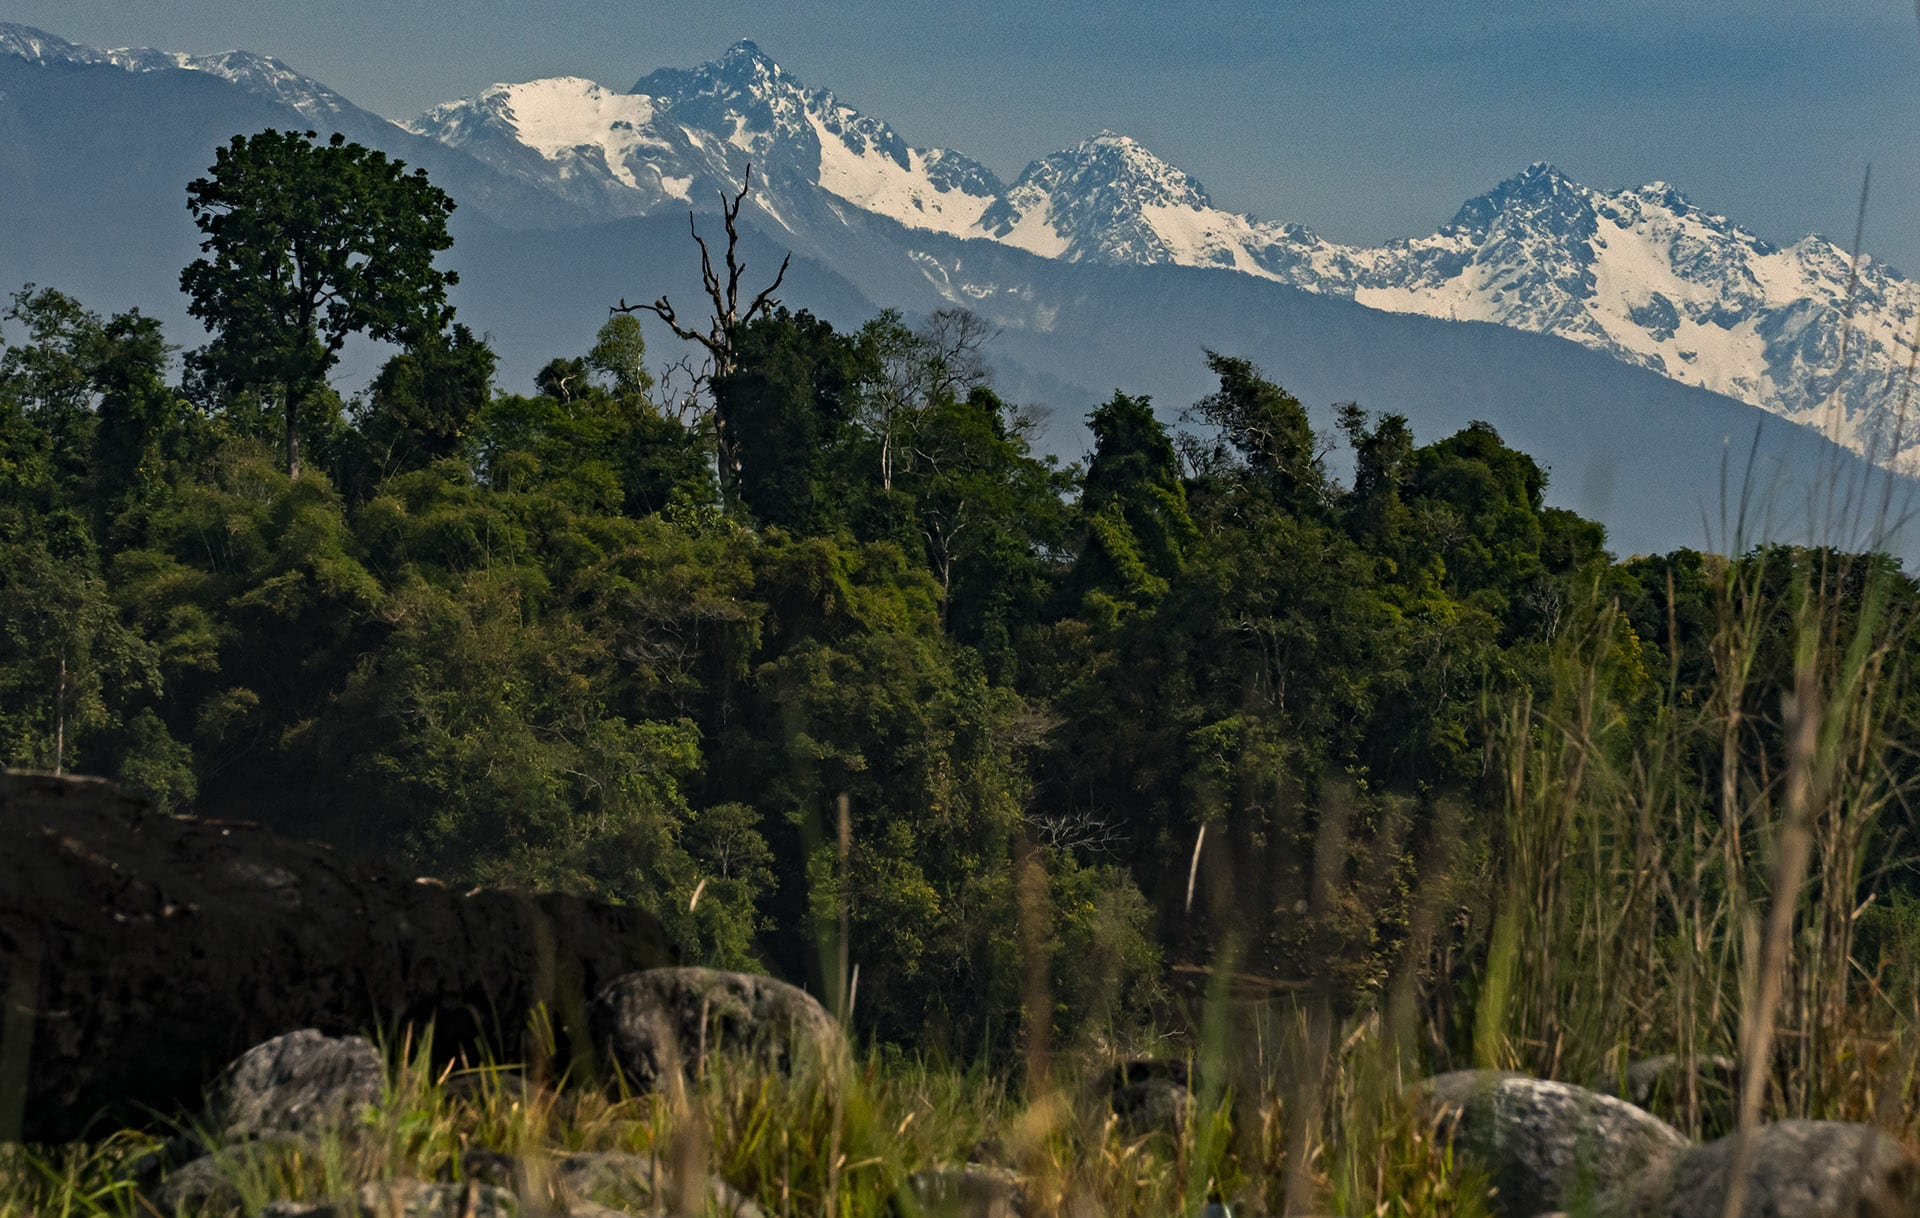 """Namdapha National Park encompasses many natural habitats. The landscape ranges from 200 to 4,500 m above sea level, creating diverse ecosystems ranging from """"tropical evergreen forest dominated by dipterocarps, tropical moist deciduous forest dominated by Terminalia and Duabanga, and moist alpine forest,"""" write Chetry et all in their paper on the region. The reserve is fed by two principal water sources: the Noa-Dehing river and Namdapha river.   Cover Photo: A Malayan flying squirrel forages in the forest canopy of Namdapha National Park, Arunachal Pradesh."""